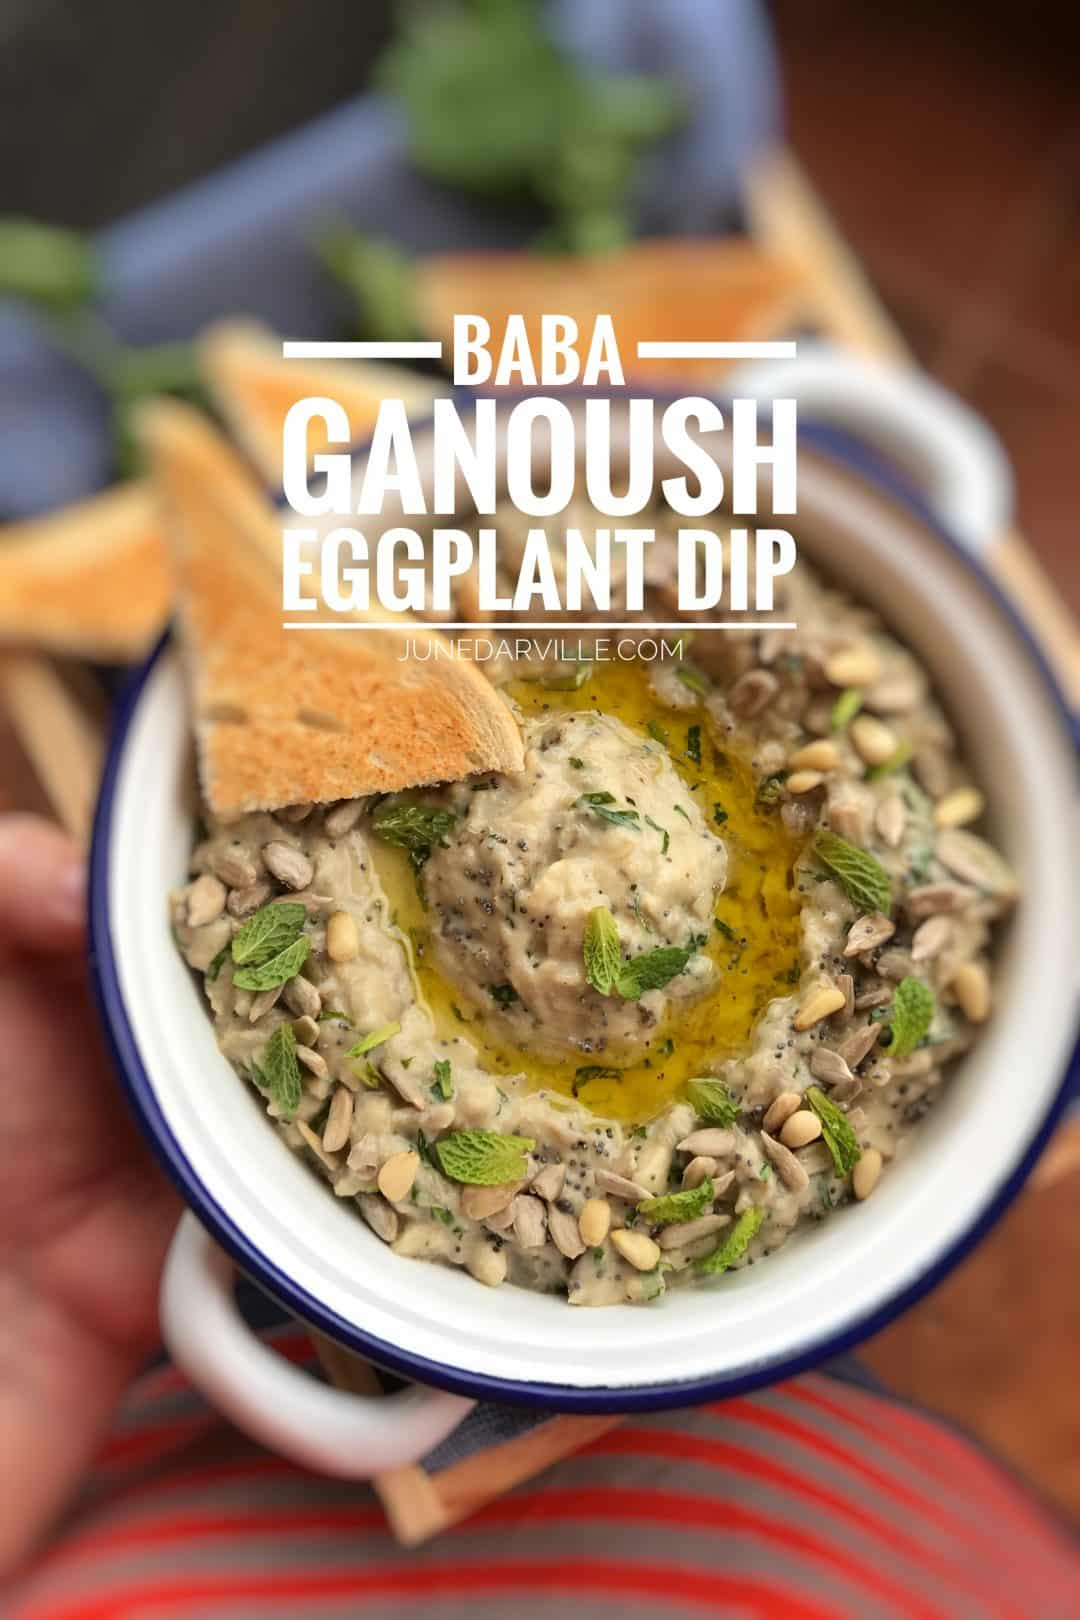 My classic baba ganoush recipe: a roasted eggplant dip with yogurt! Watch my video of how to prepare baba ganoush with the KitchenAid Stand Mixer Mini!